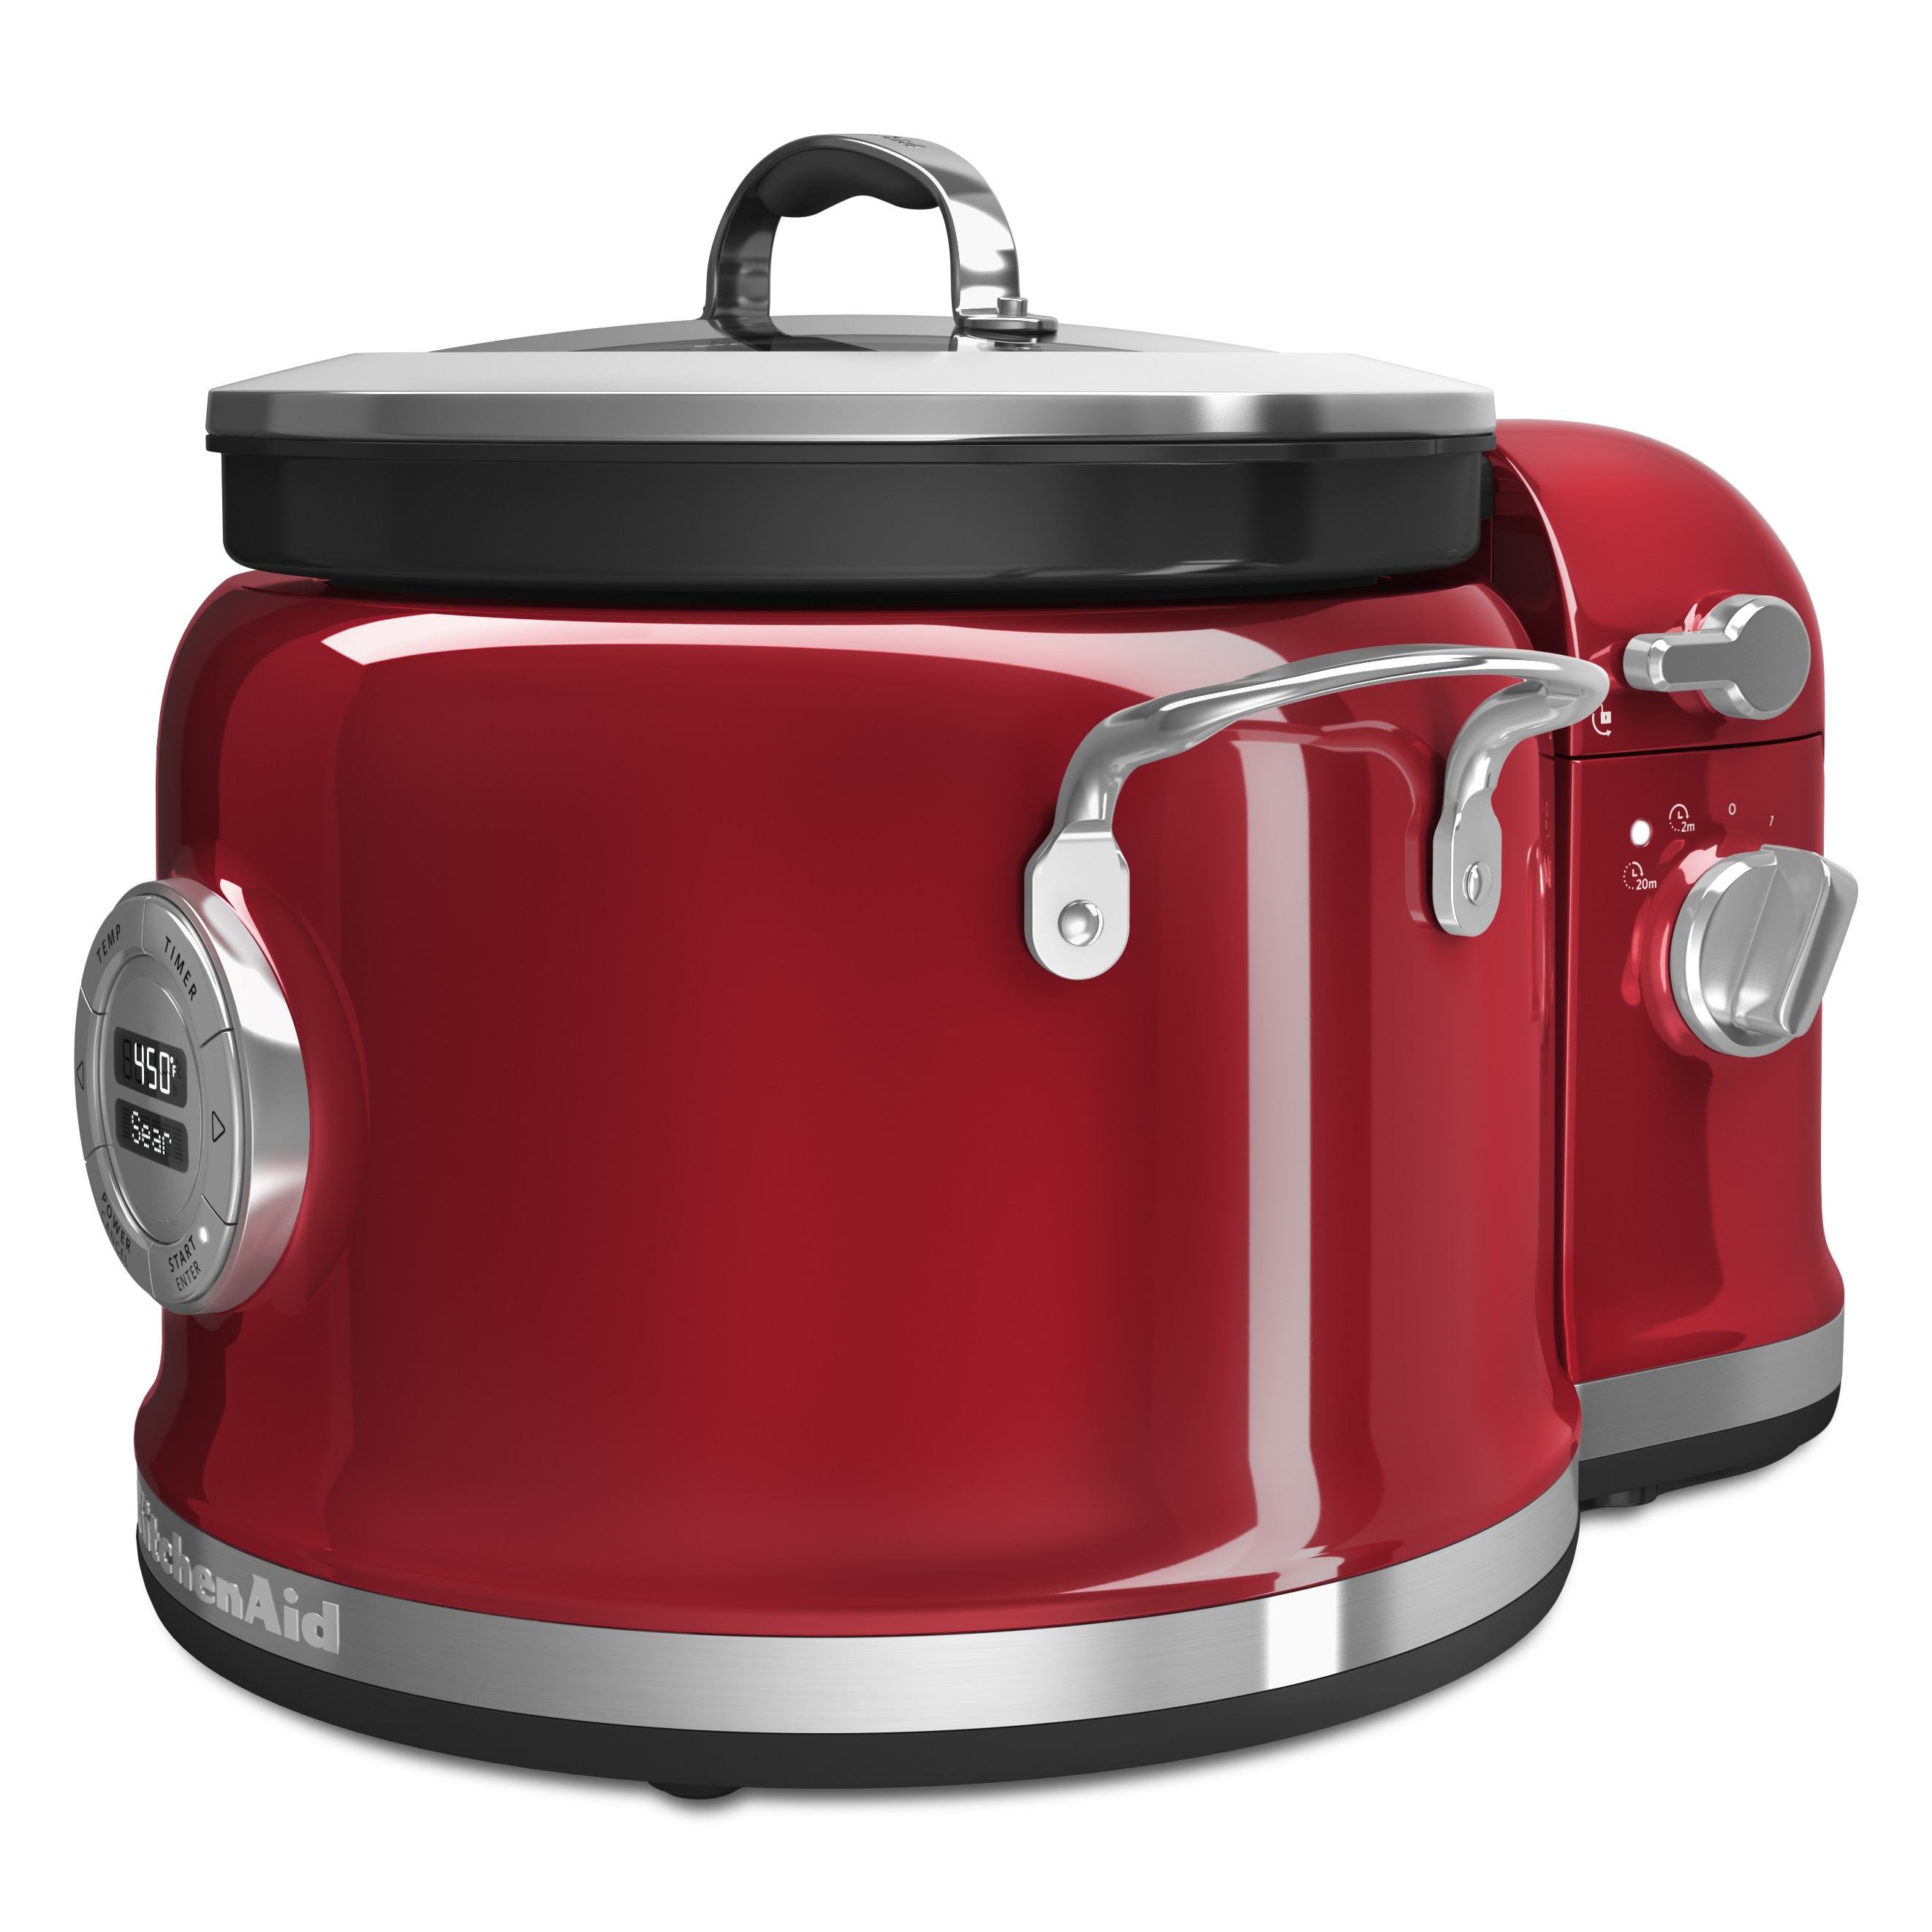 KitchenAid  Candy Apple Red 4-Quart Multi-Cooker with Stir Tower